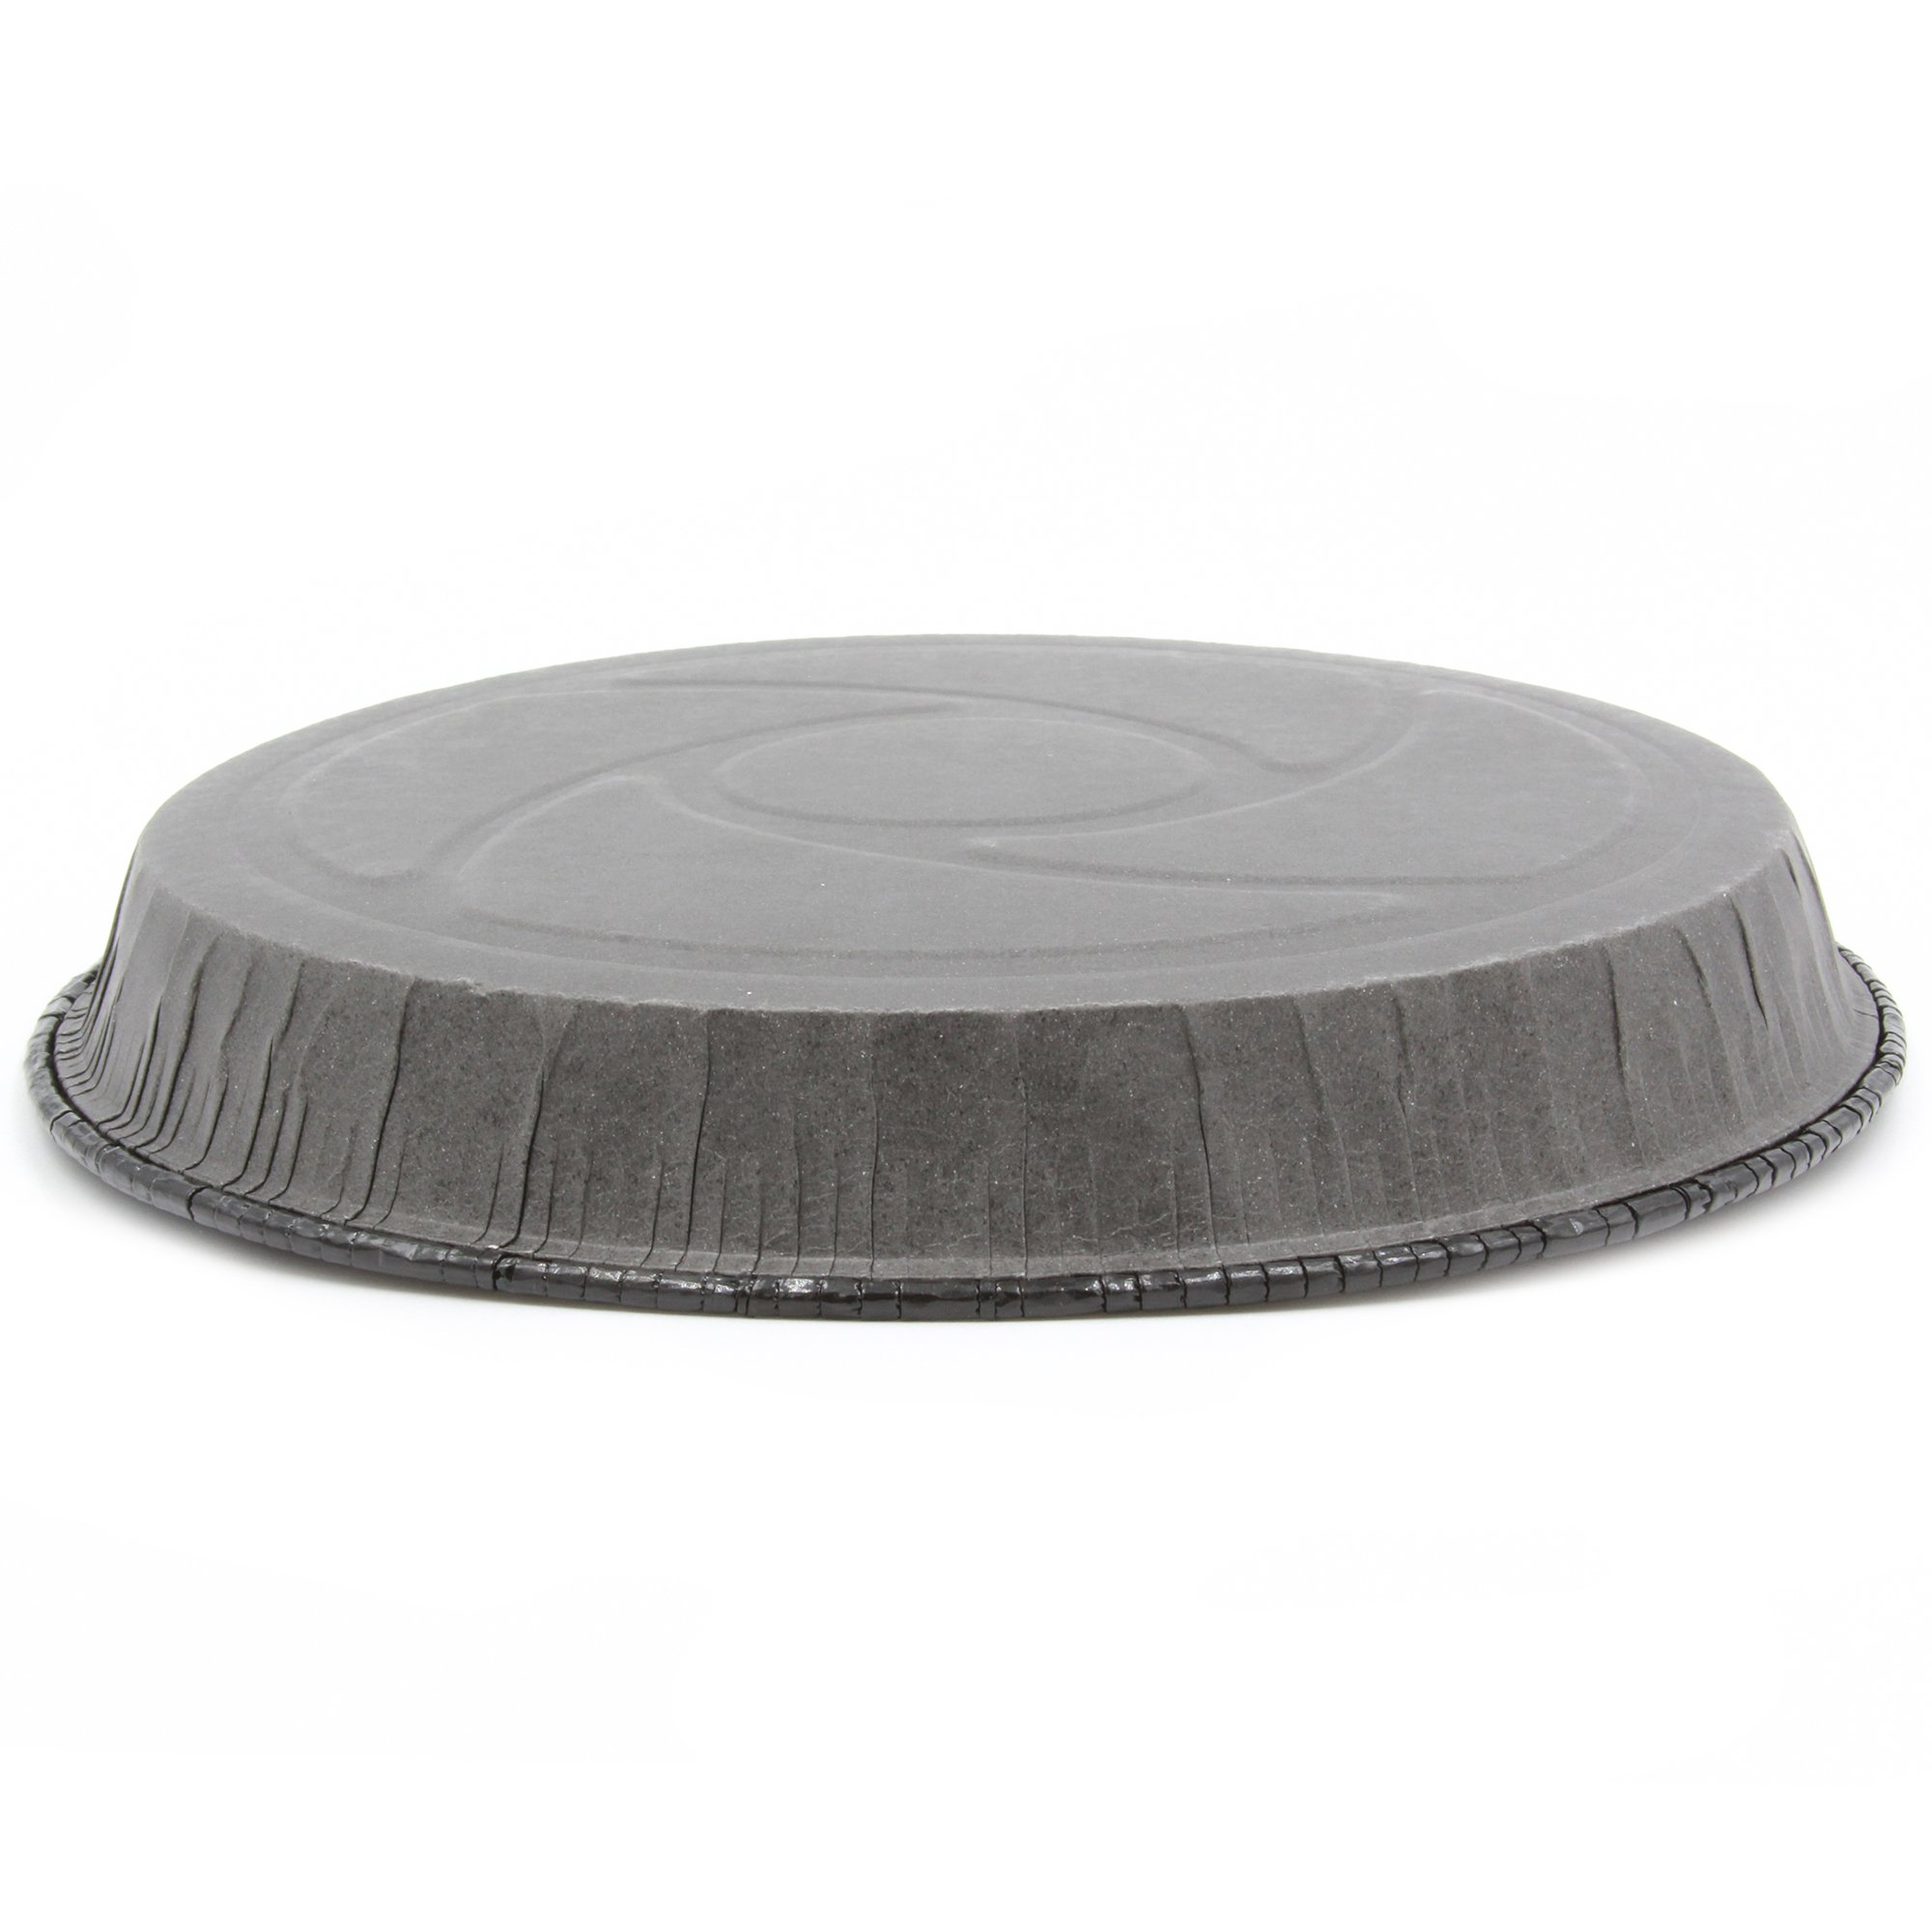 Paper Baking Round Pie Molds Easy Baking/Easy Release No Need To Spray Color Black Size B 7 51/64 x H 63/64'' Model 8019825NCT (65) by Ecobake (Image #3)